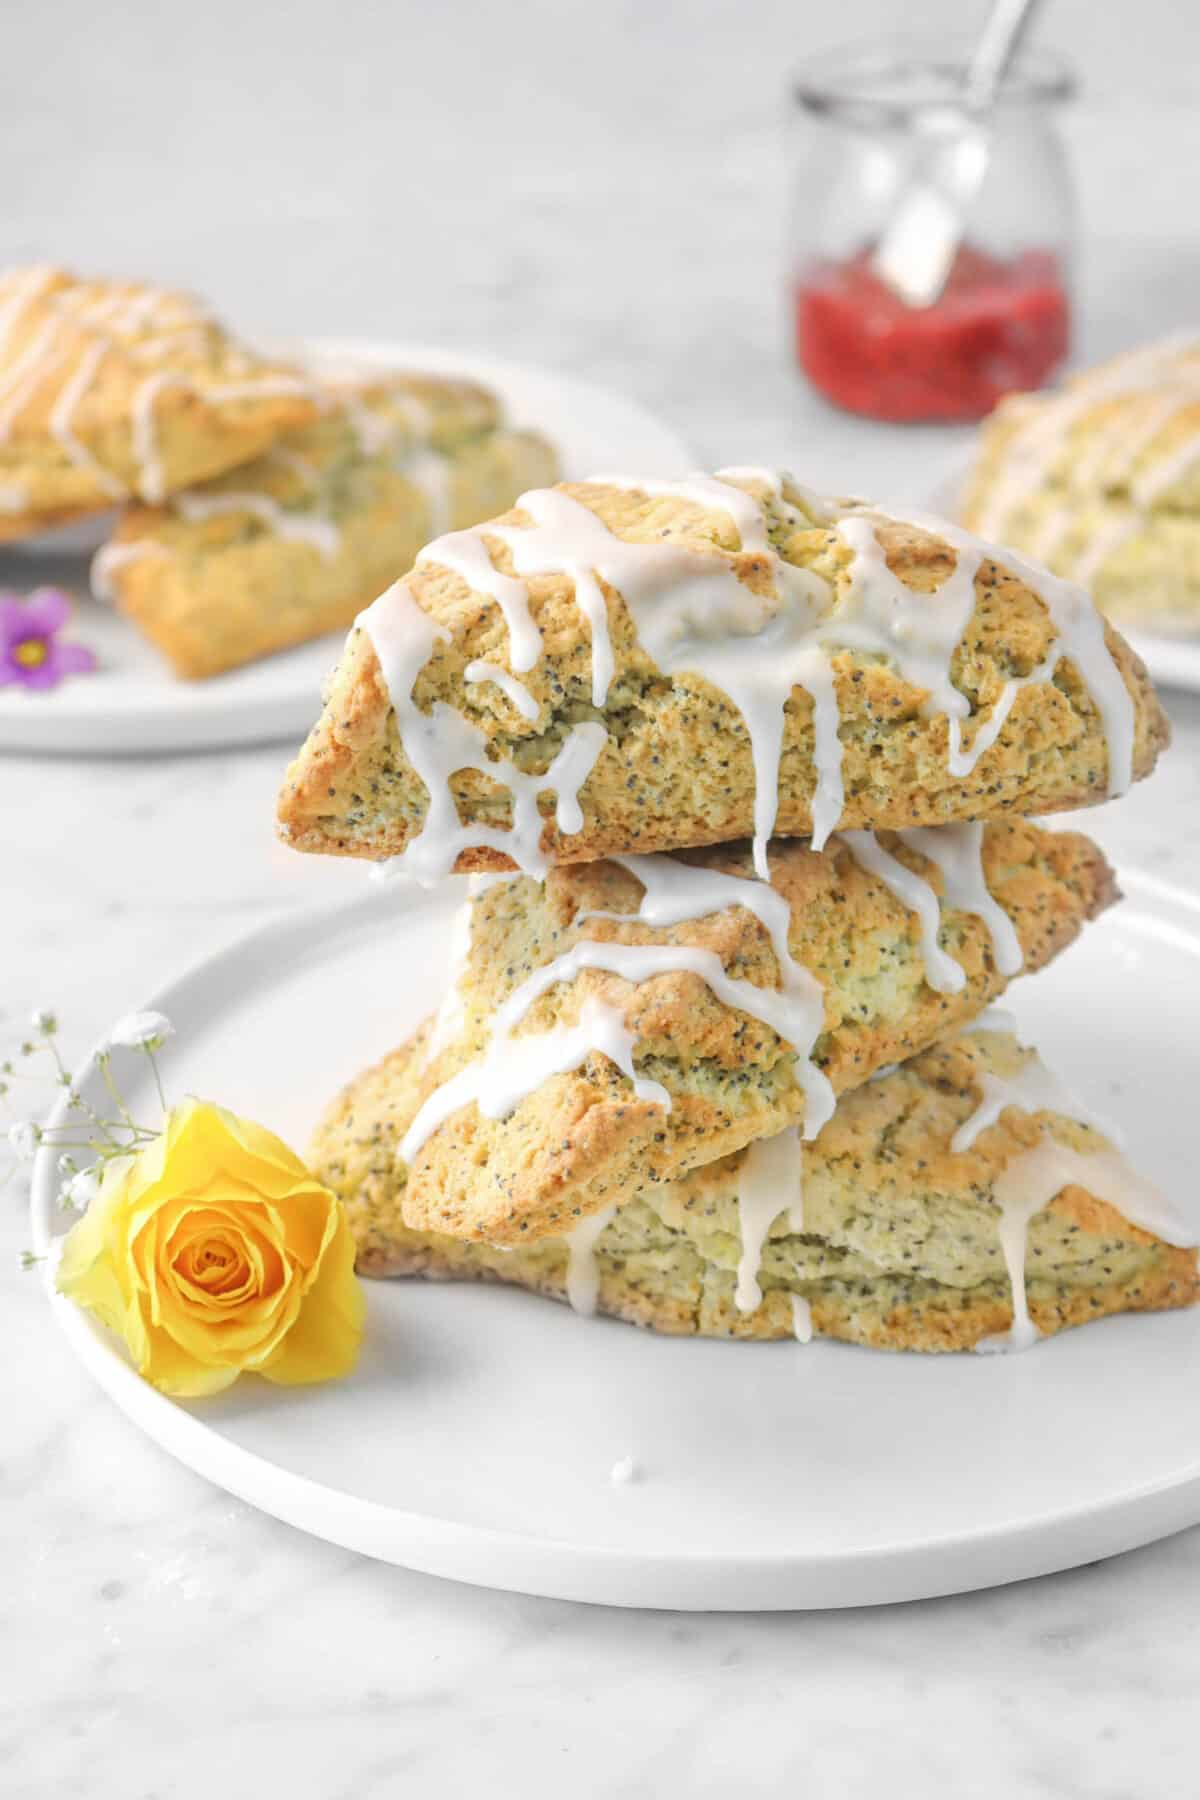 three lemon poppyseed scones with fresh flowers, more scones in the back, and a jar of jam